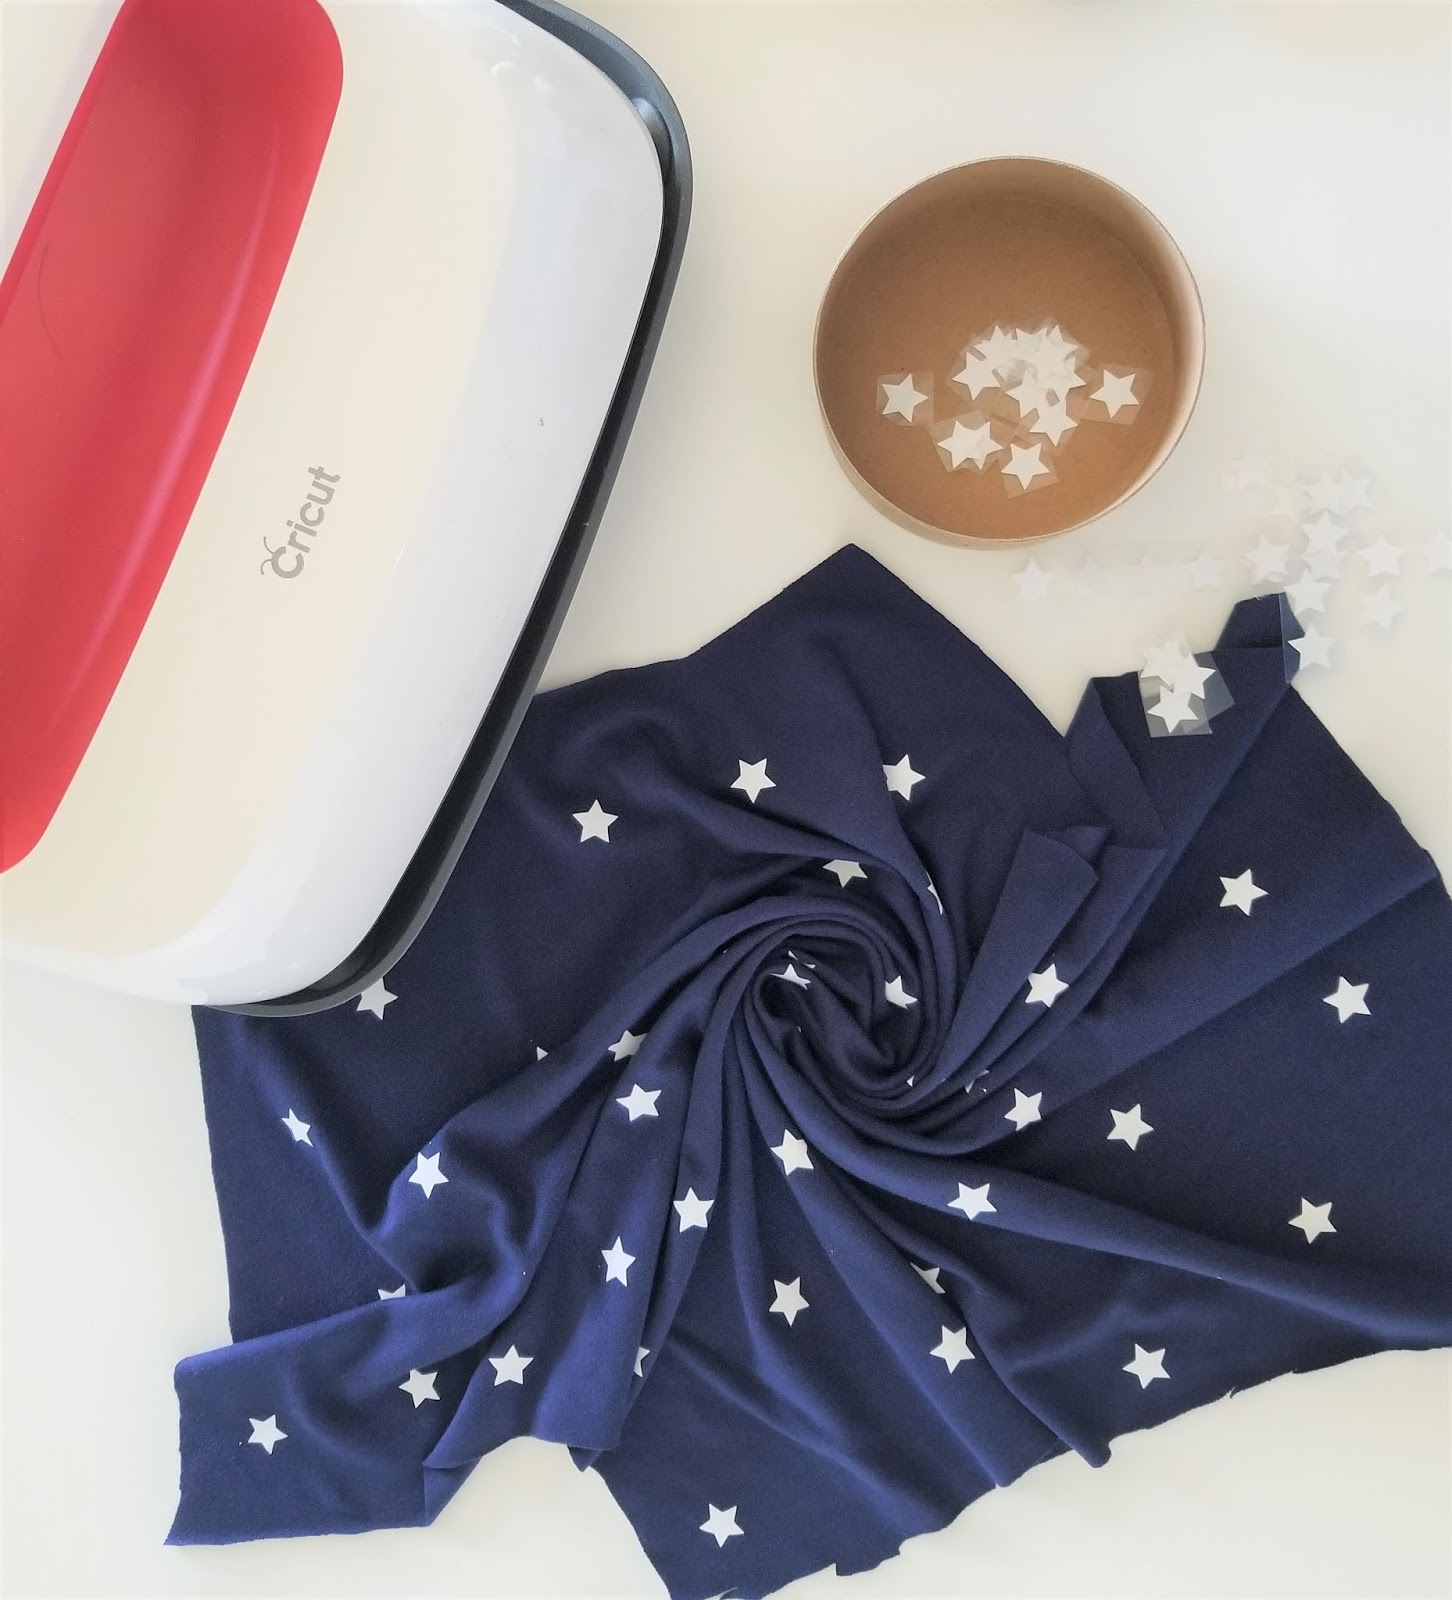 Easy Way to Design Your Own Fabric with Vinyl   Sew Simple Home